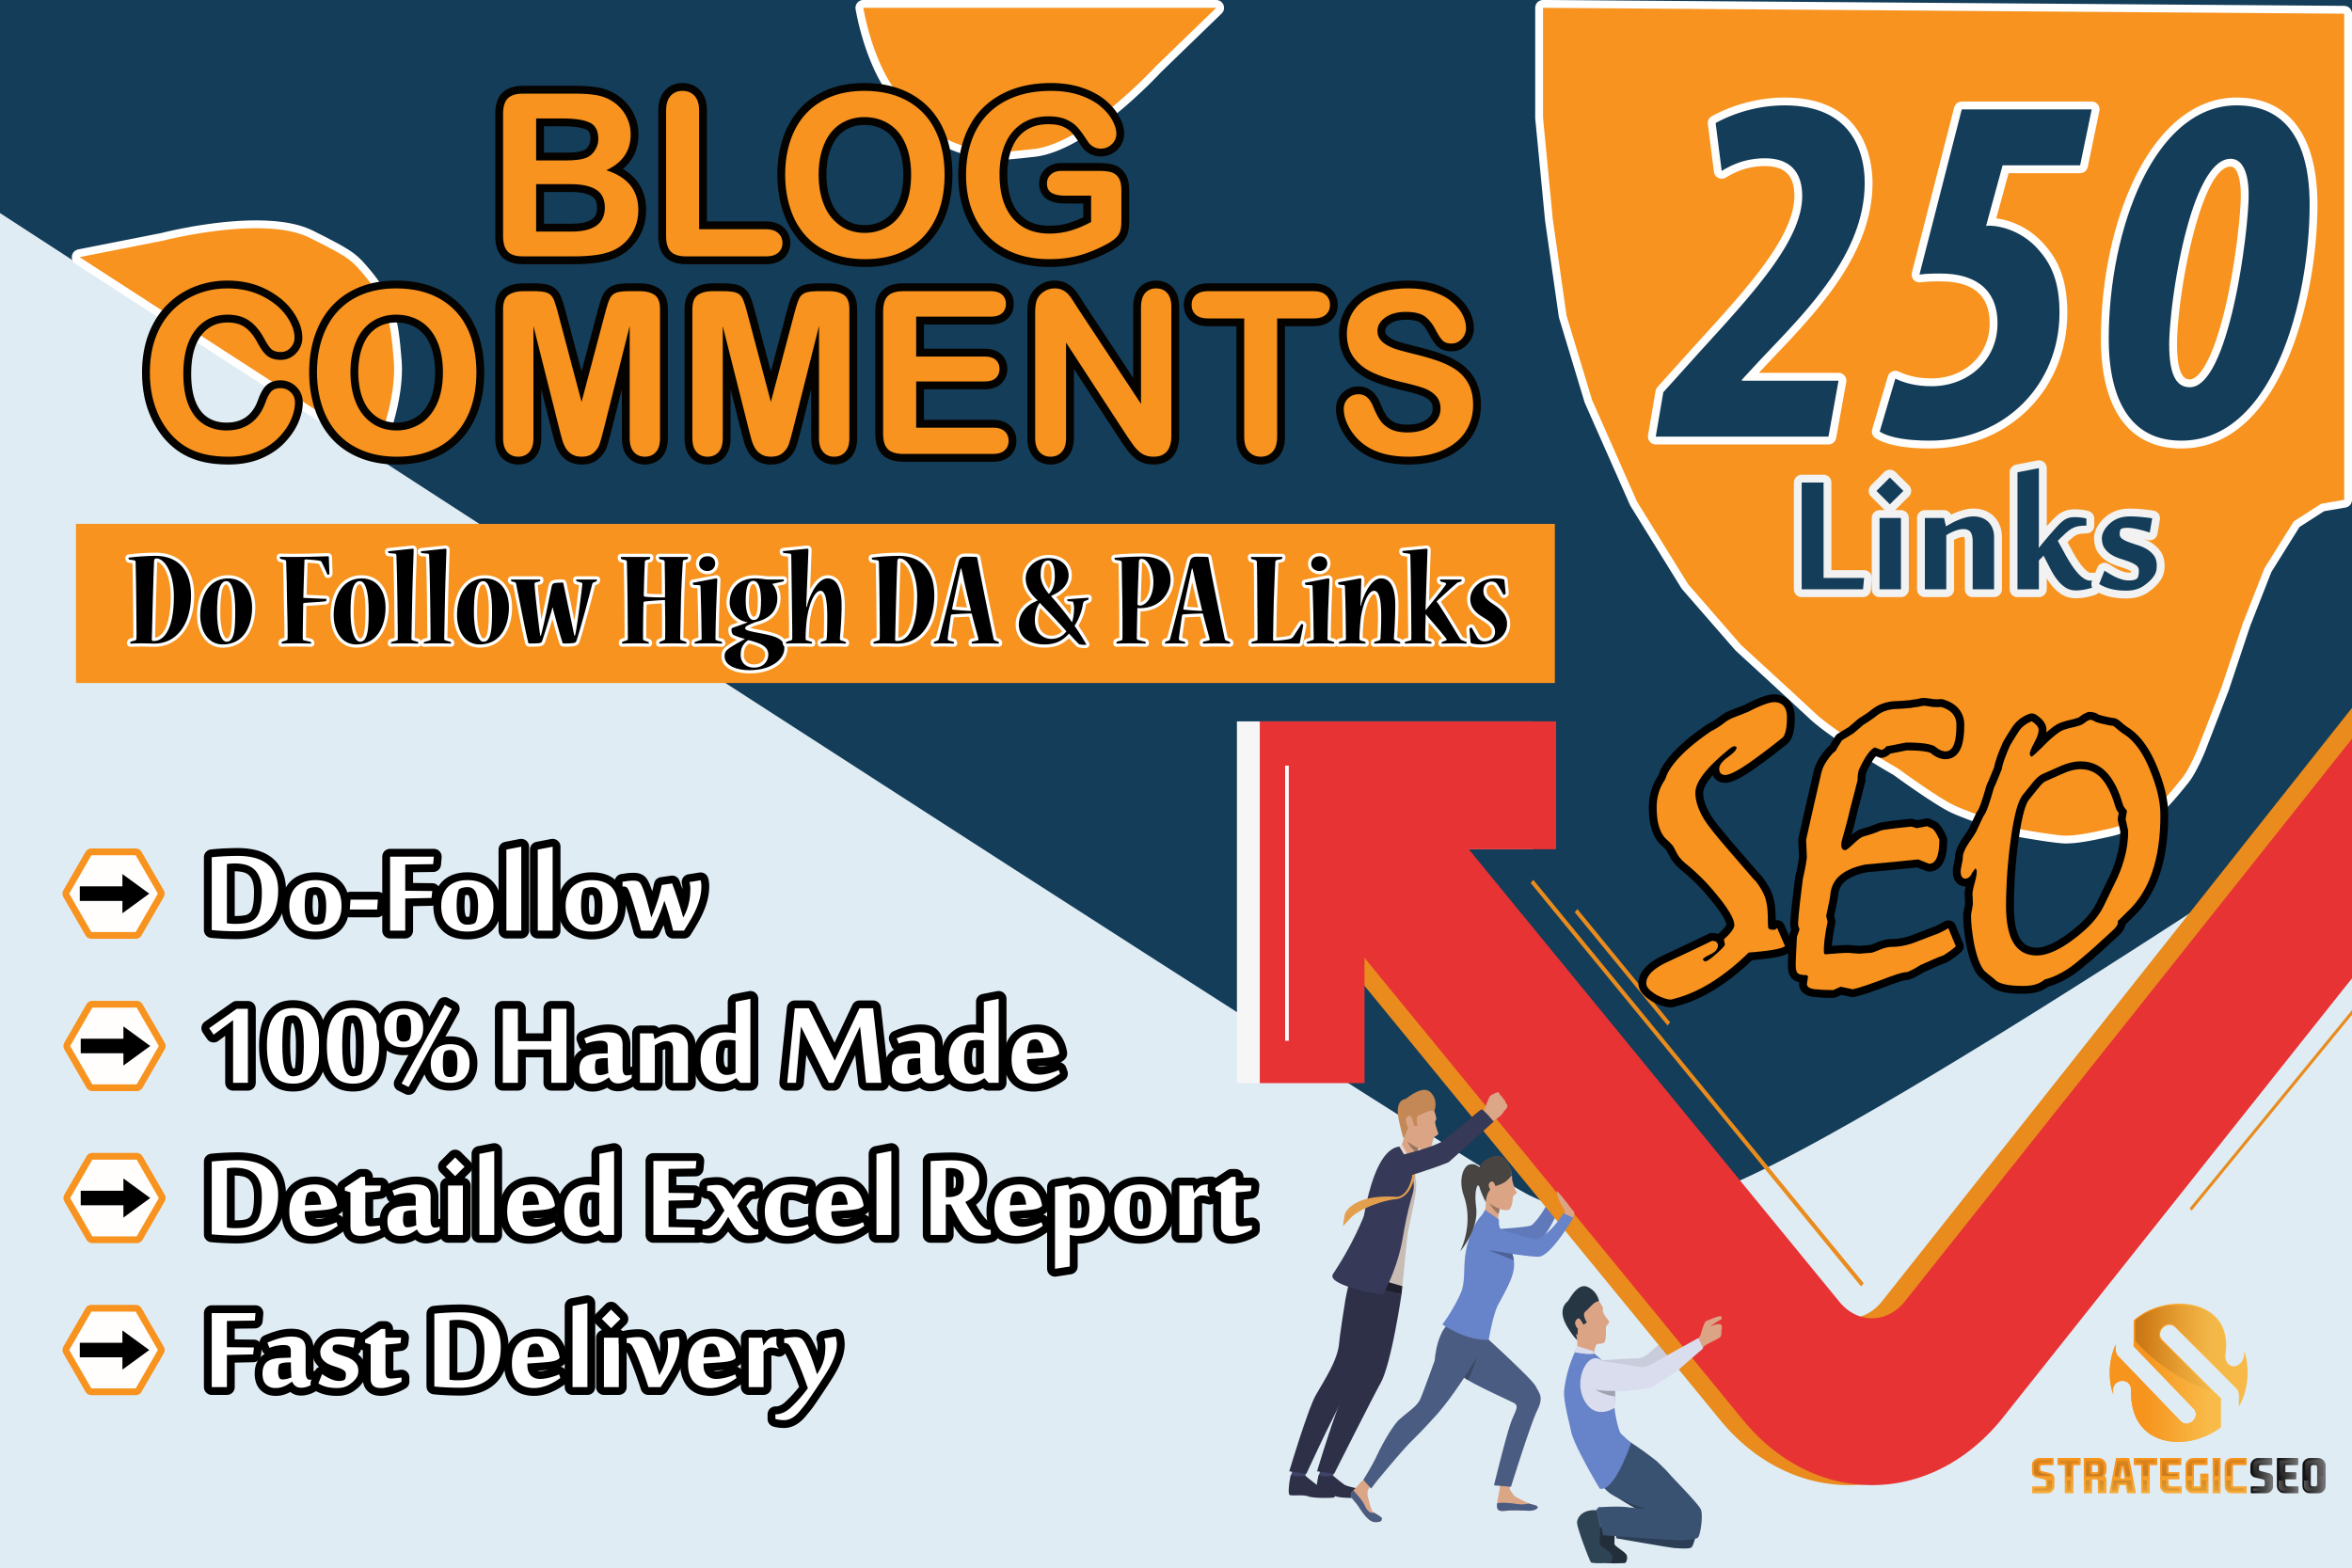 i will provides high-quality and Hnad Made Blog Comment